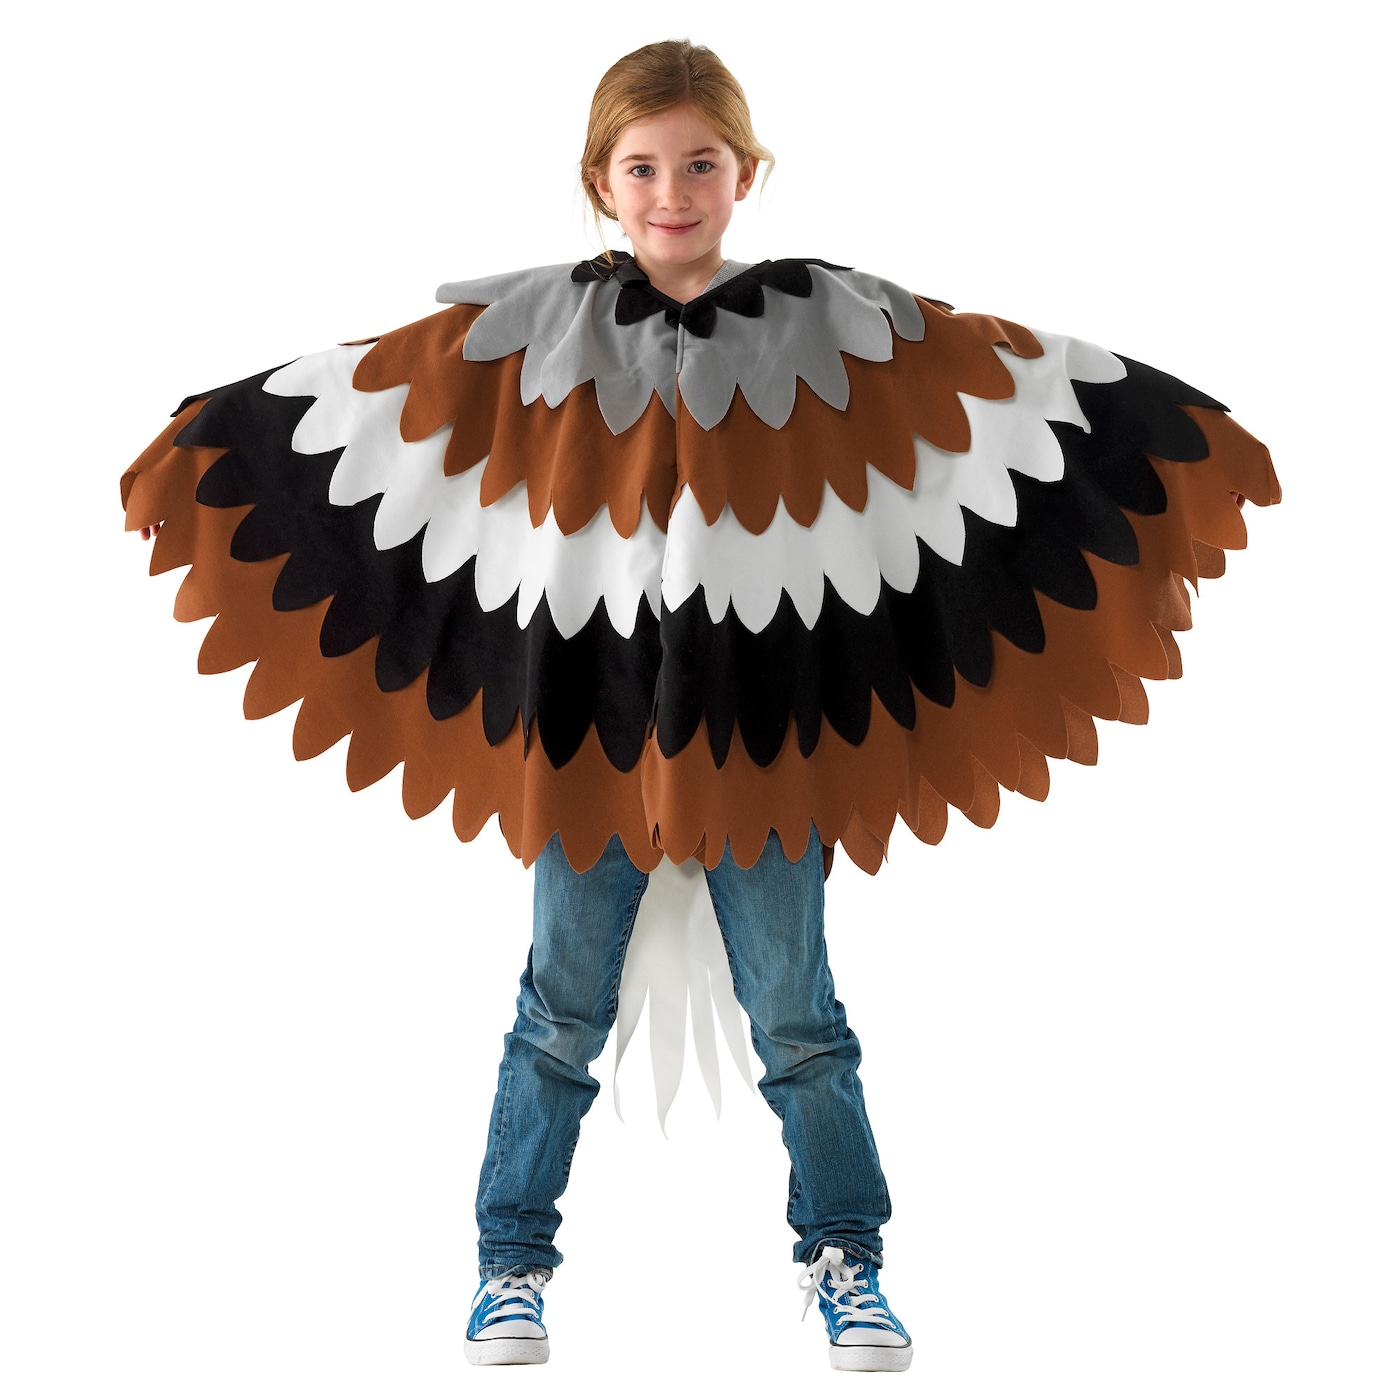 IKEA LATTJO eagle cape One size fits all, both children and adults.